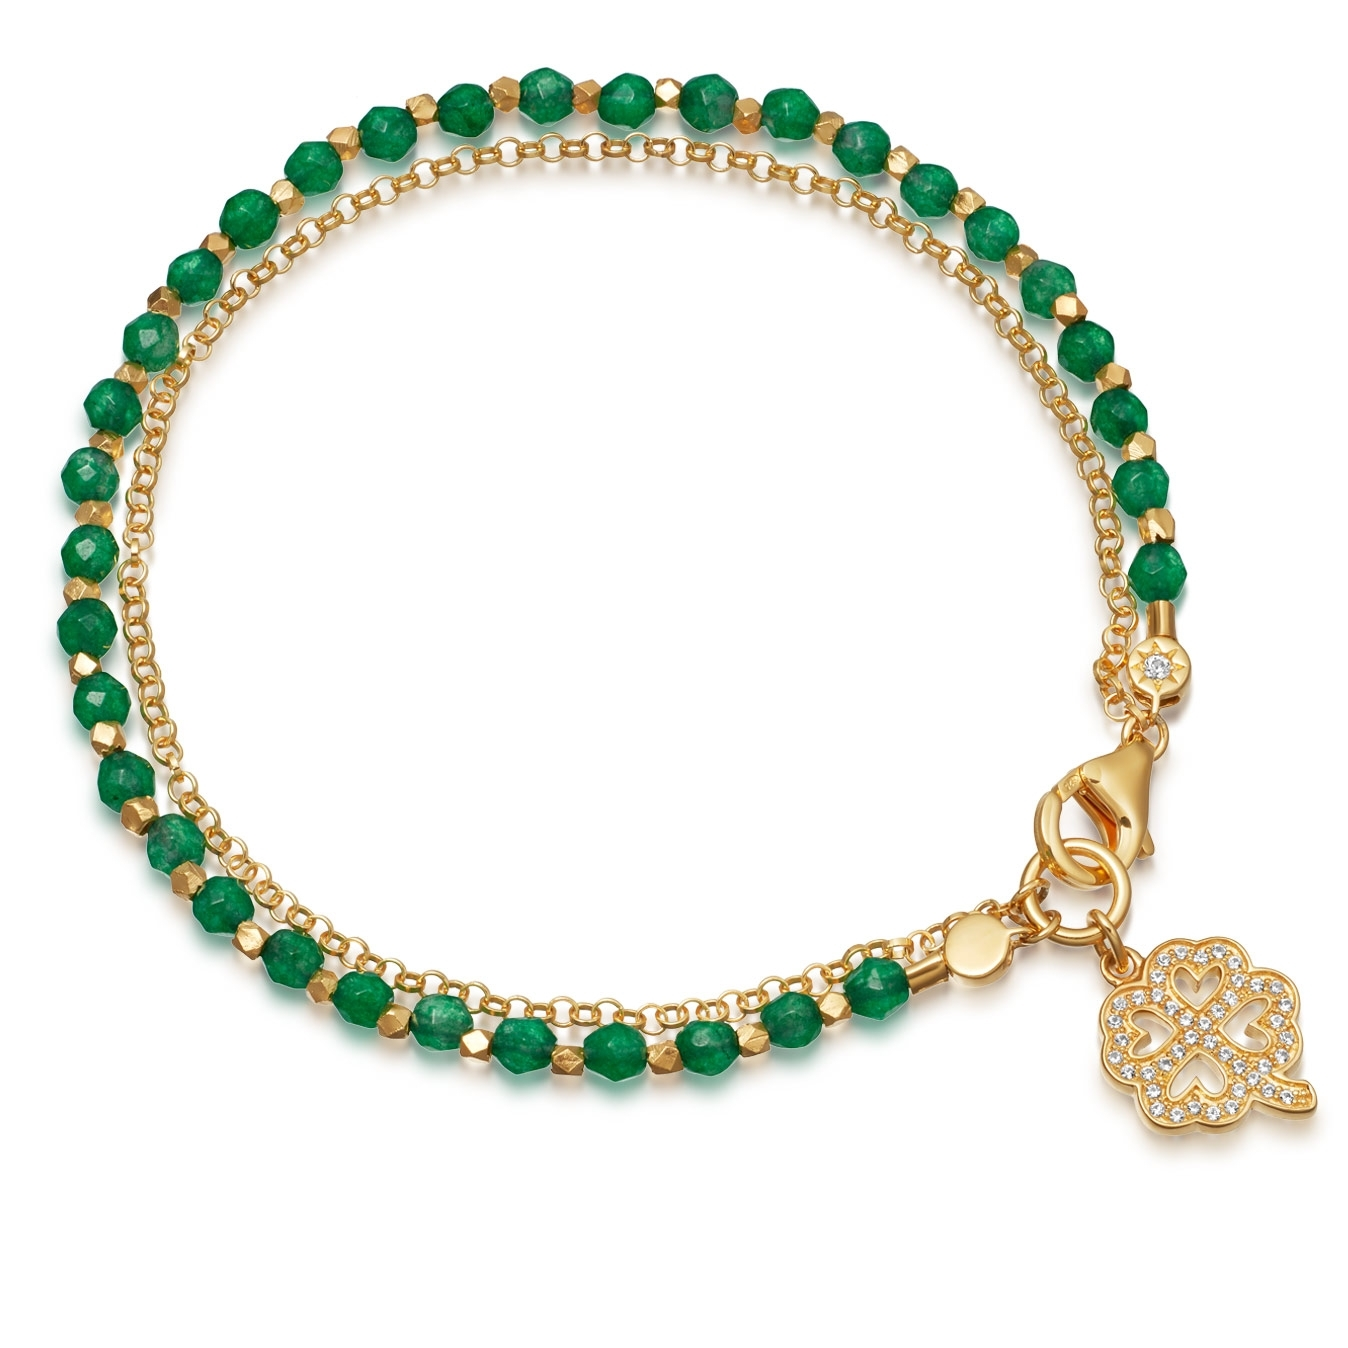 Green Onyx Four Leaf Clover Biography Bracelet